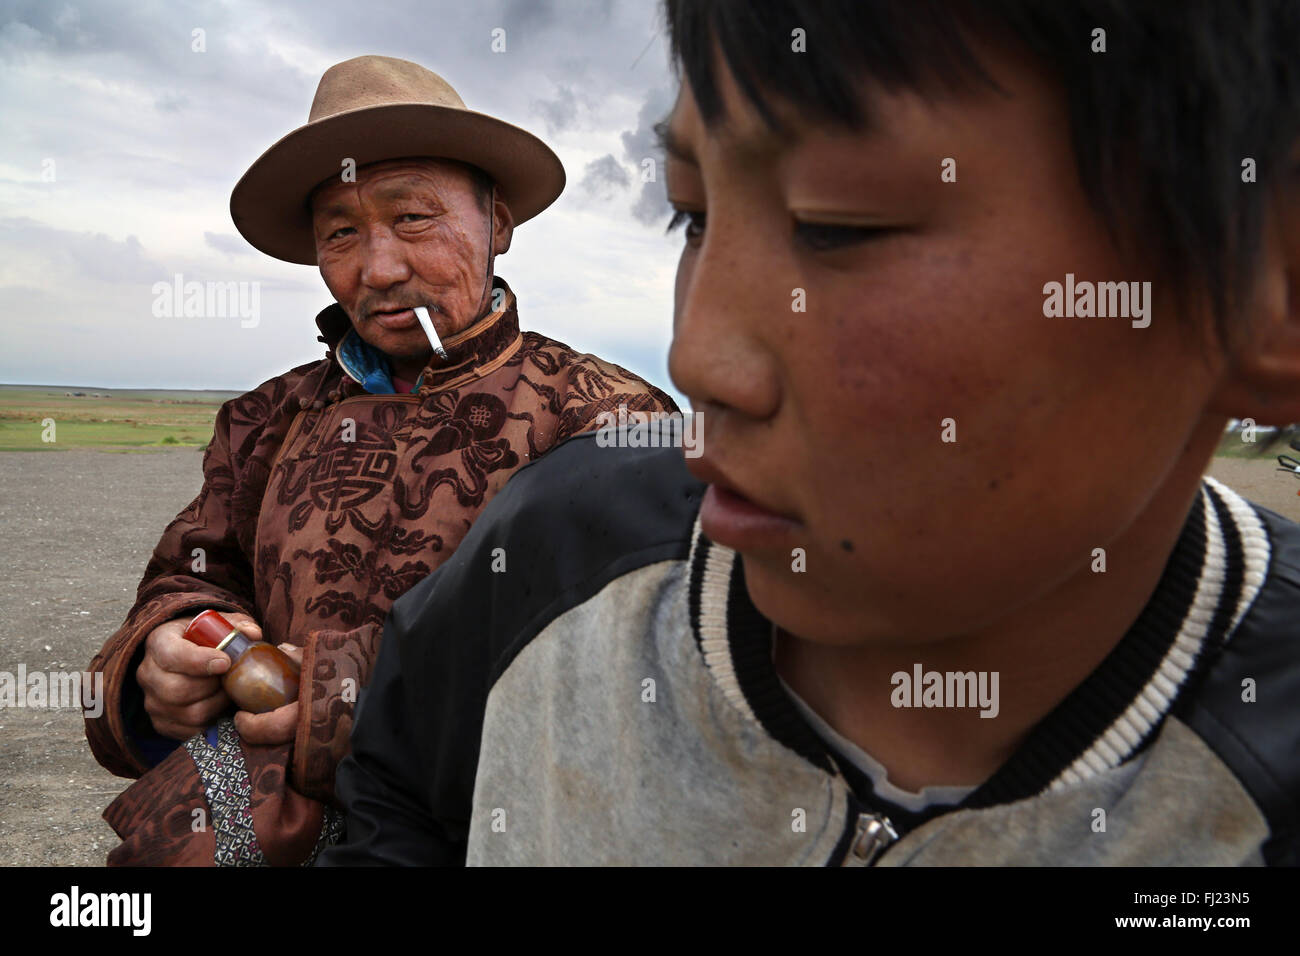 Portrait de l'homme de la Mongolie Photo Stock